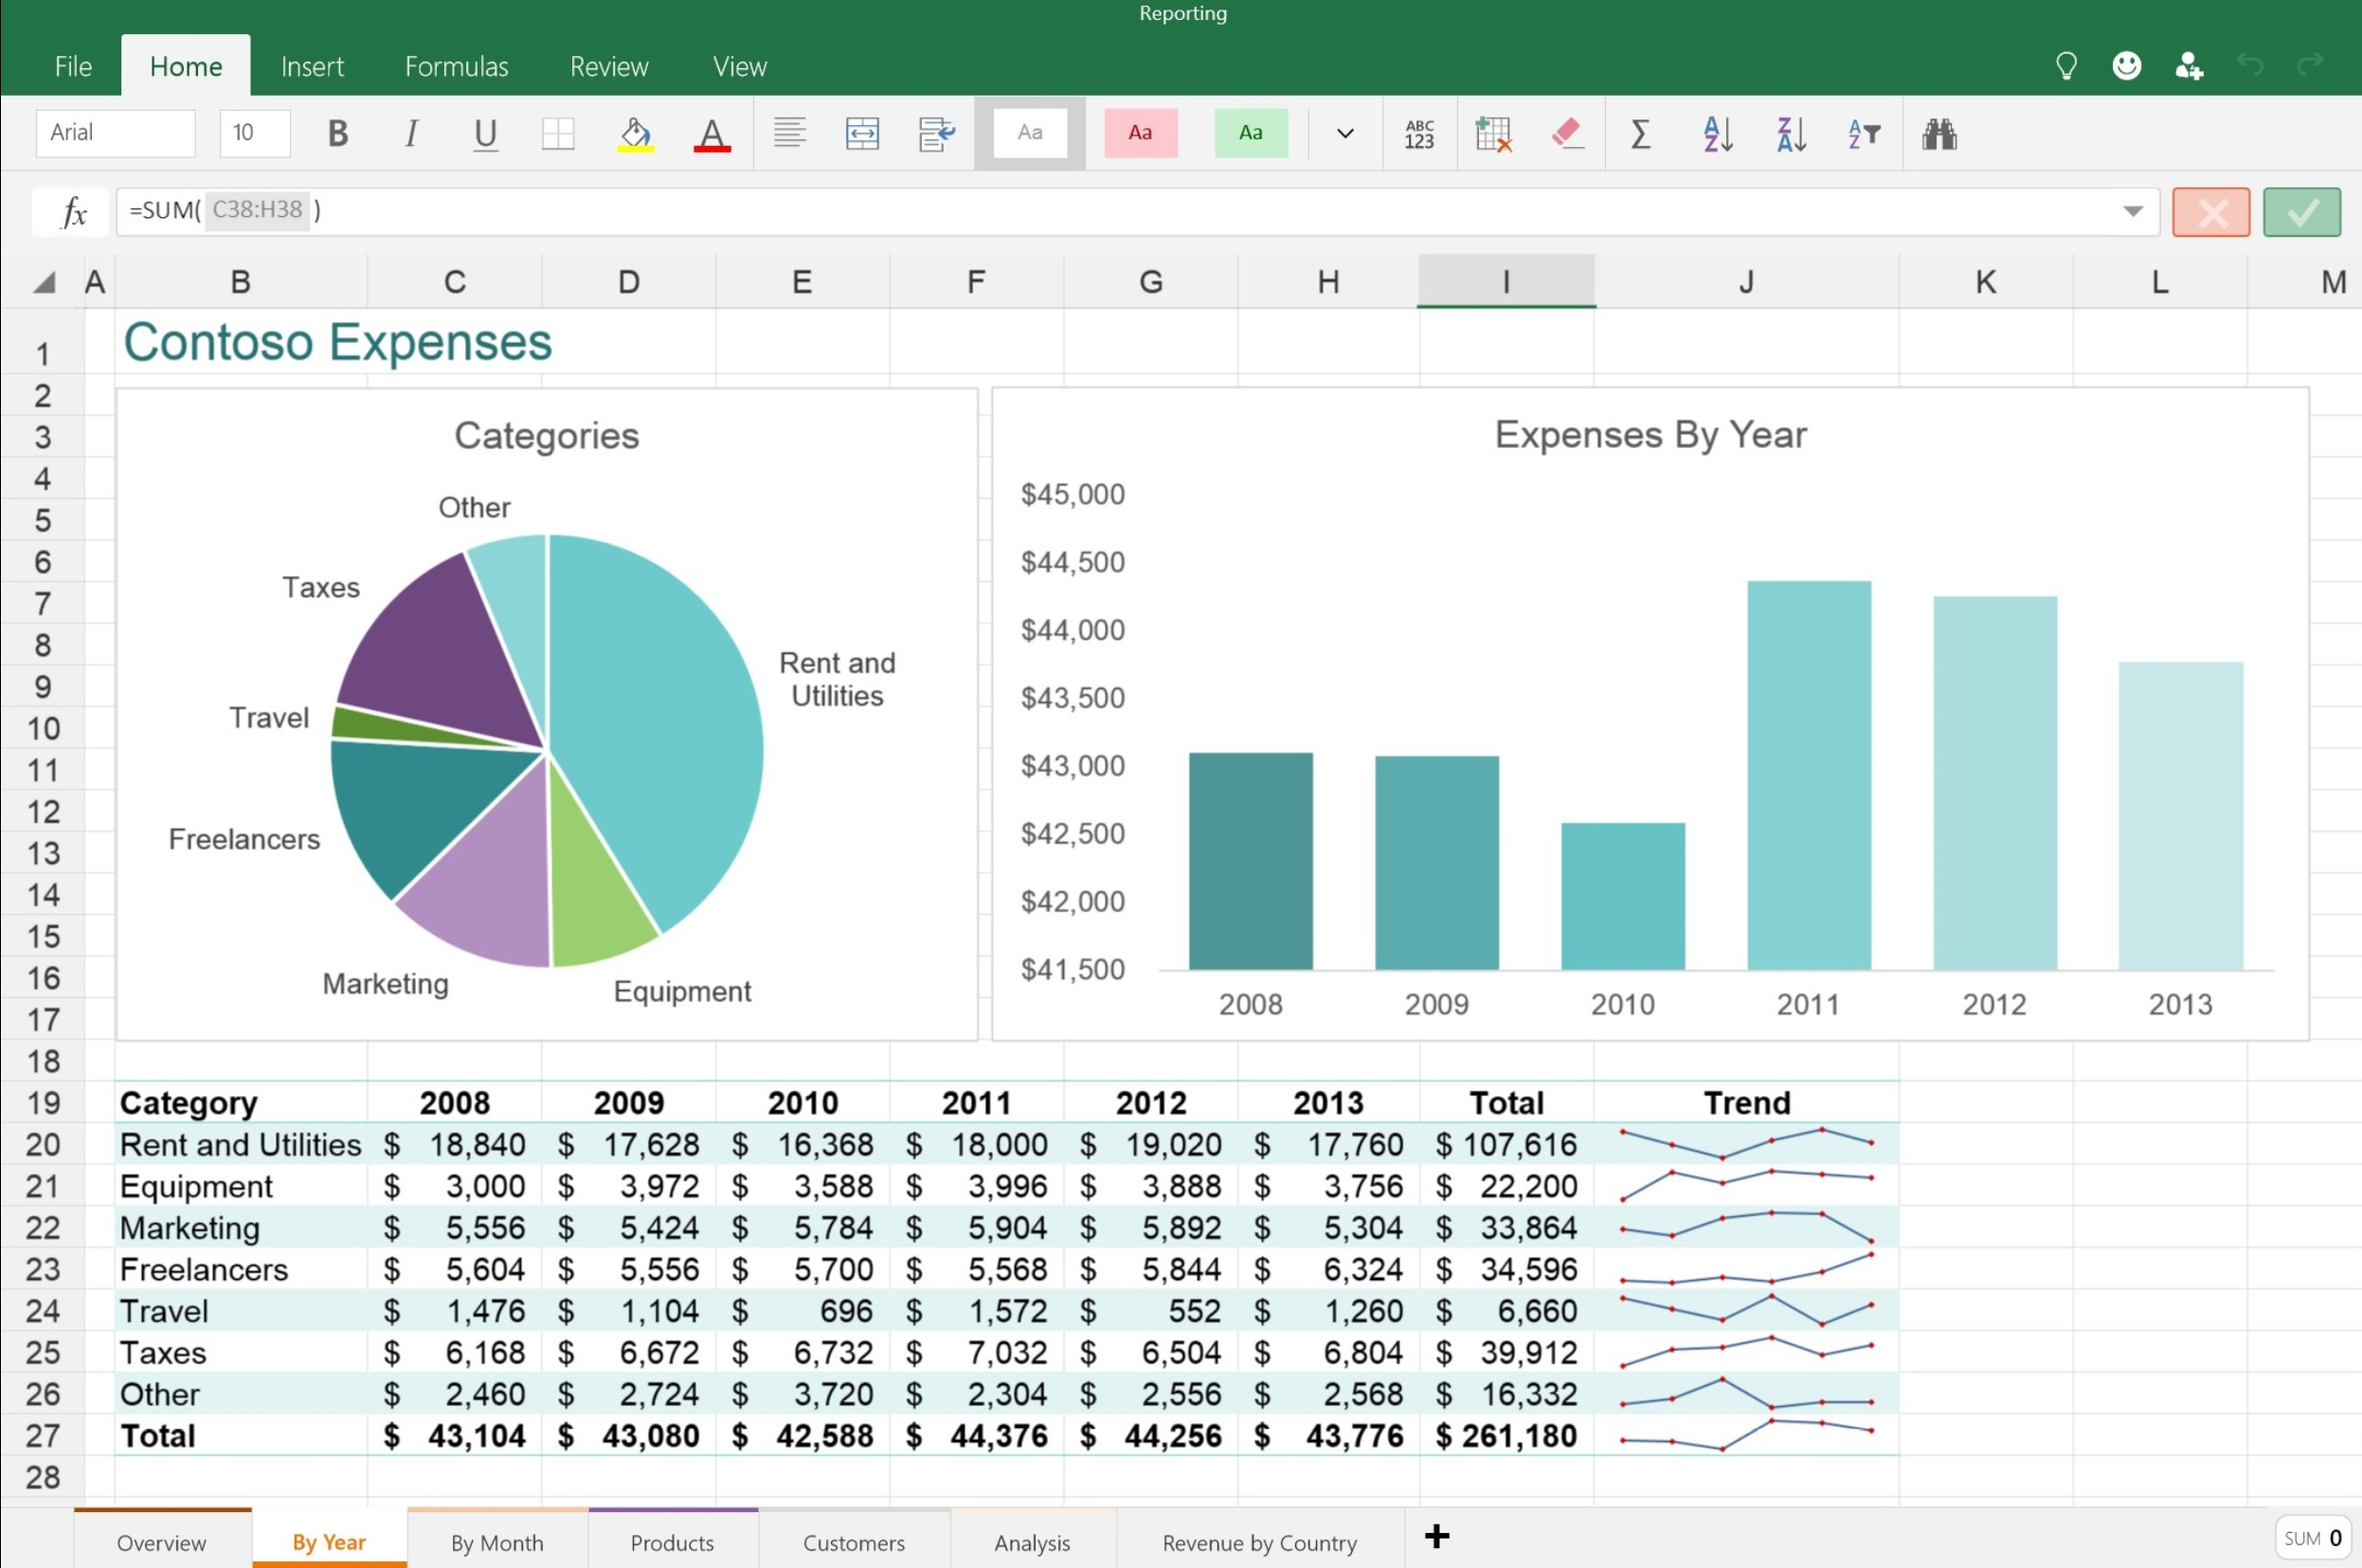 Ediblewildsus  Outstanding Features Available In The New Word Excel And Powerpoint Apps For  With Inspiring Excel Touch App  With Nice Excel Vba Select Row Also How To Do Sums In Excel In Addition Solve For X Excel And Excel Number Rows As Well As Excel Plugin Additionally Growth Rate Excel From Mspowerusercom With Ediblewildsus  Inspiring Features Available In The New Word Excel And Powerpoint Apps For  With Nice Excel Touch App  And Outstanding Excel Vba Select Row Also How To Do Sums In Excel In Addition Solve For X Excel From Mspowerusercom